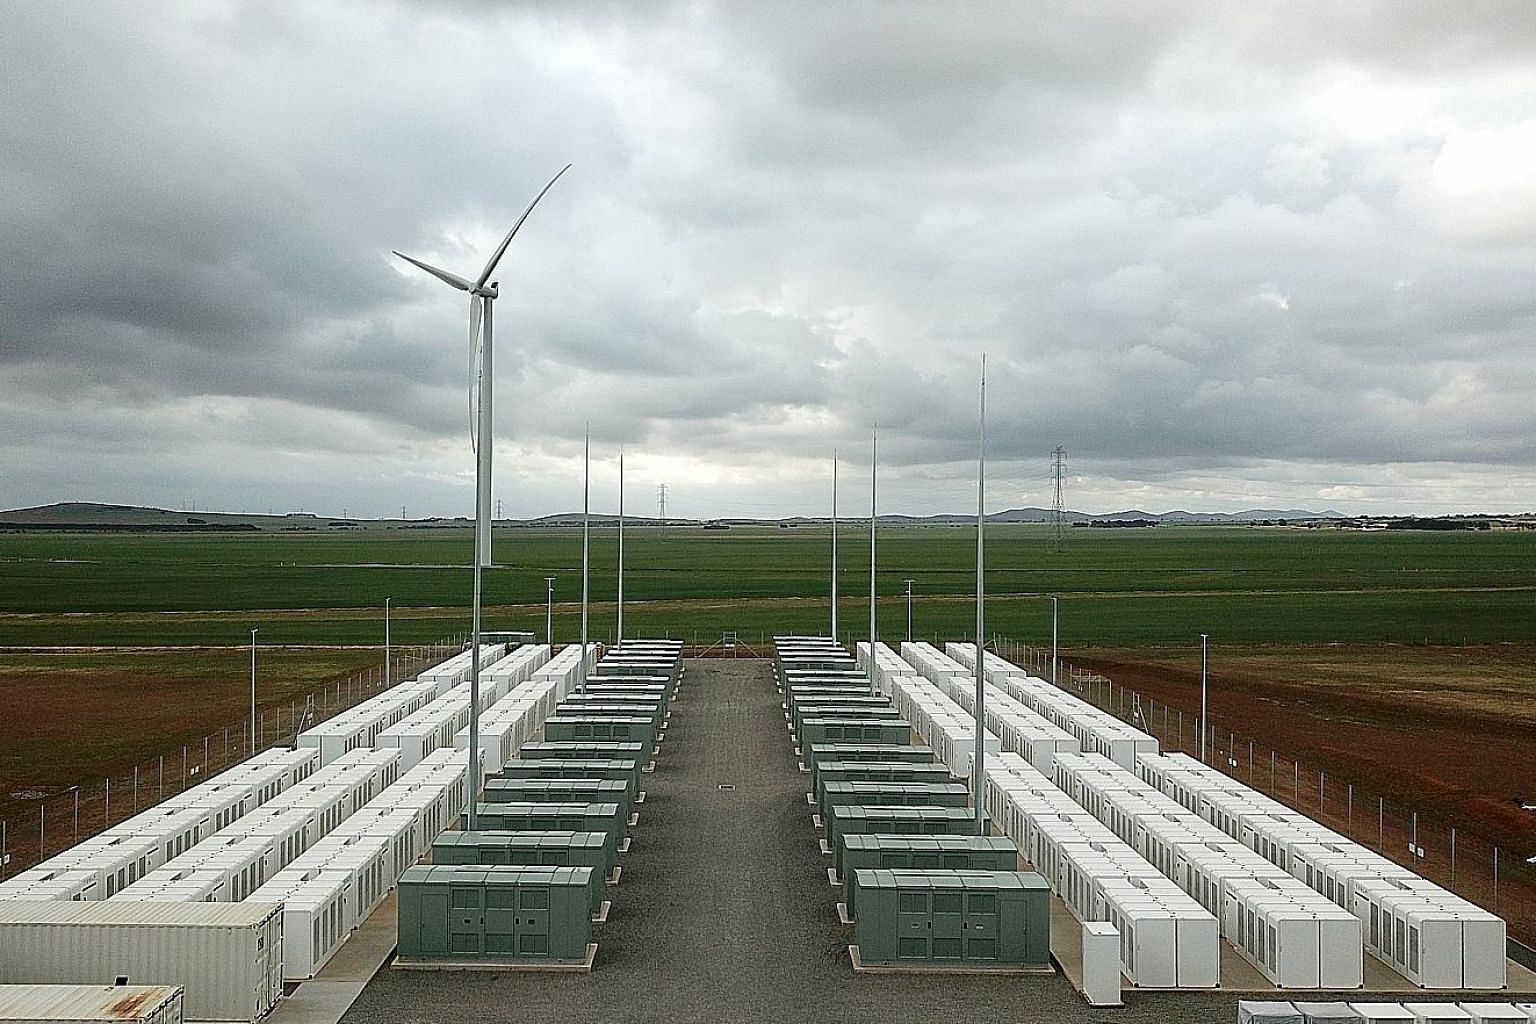 Following the September 2016 blackout, Tesla won the contract to construct the world's biggest lithium-ion battery. The 100MW battery farm can power more than 30,000 homes.